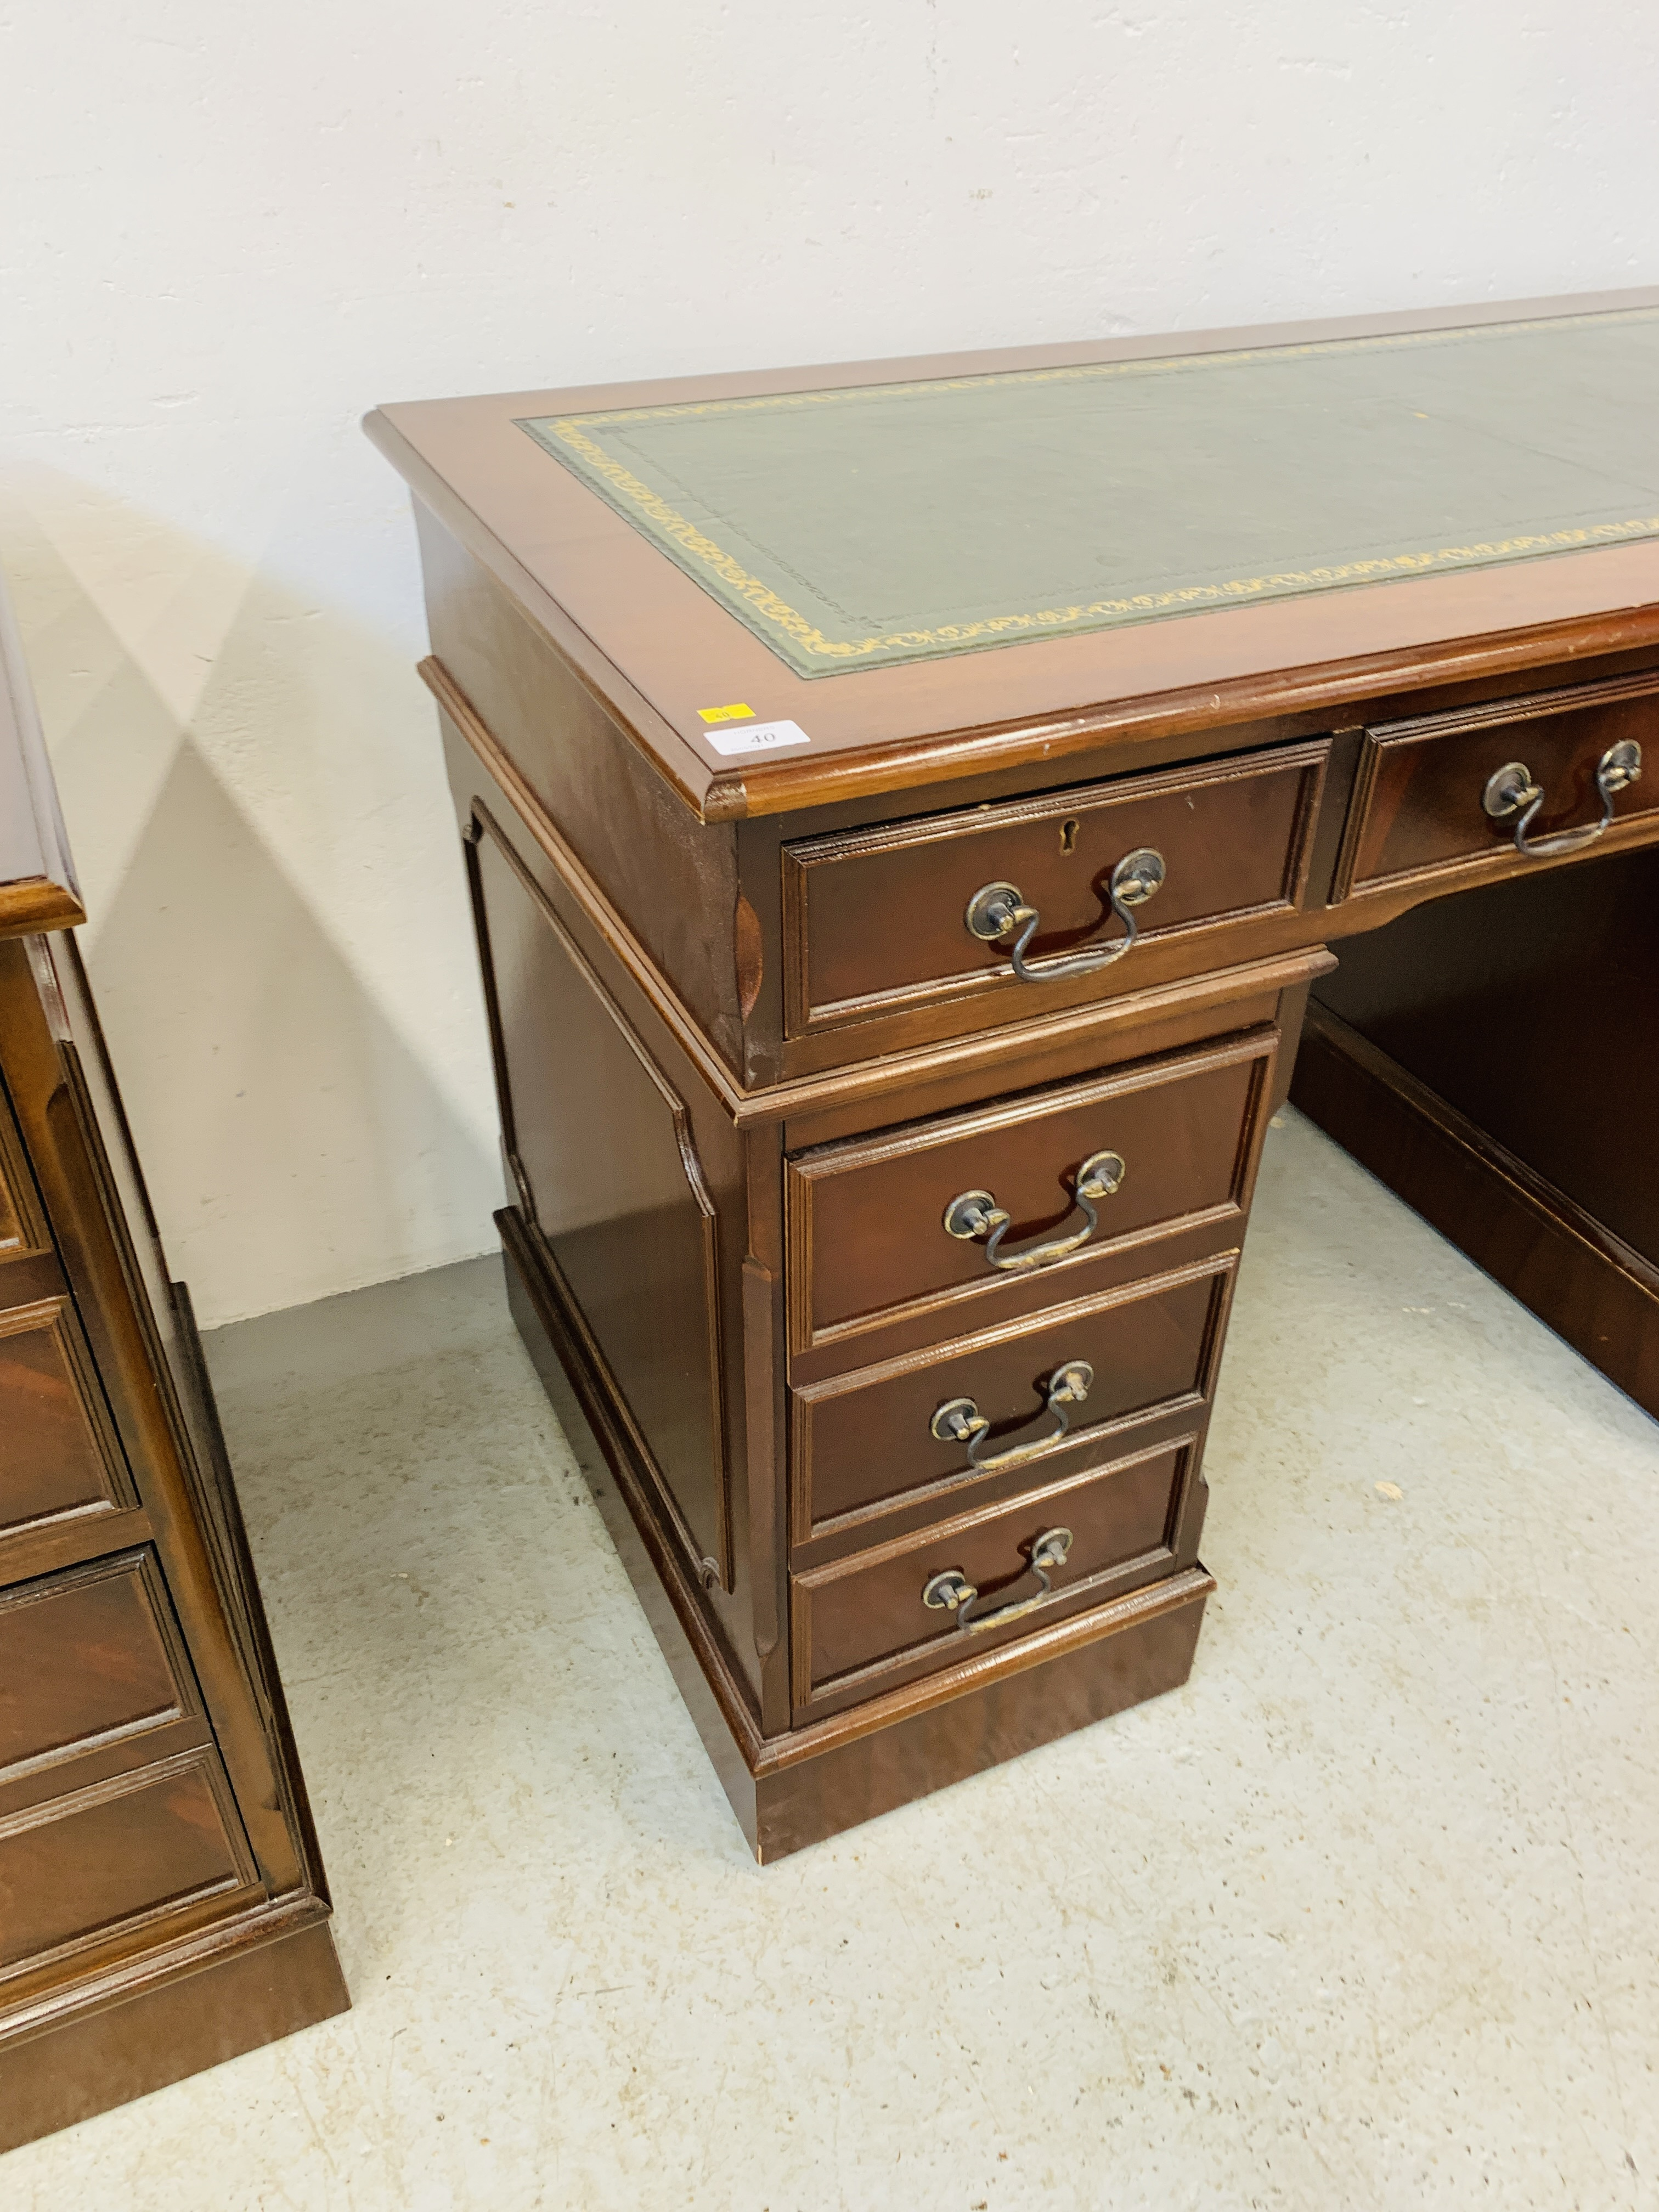 A REPRODUCTION MAHOGANY FINISH NINE DRAWER KNEE HOLE DESK WITH GREEN TOOLED LEATHER INSERT TO TOP - Image 8 of 14